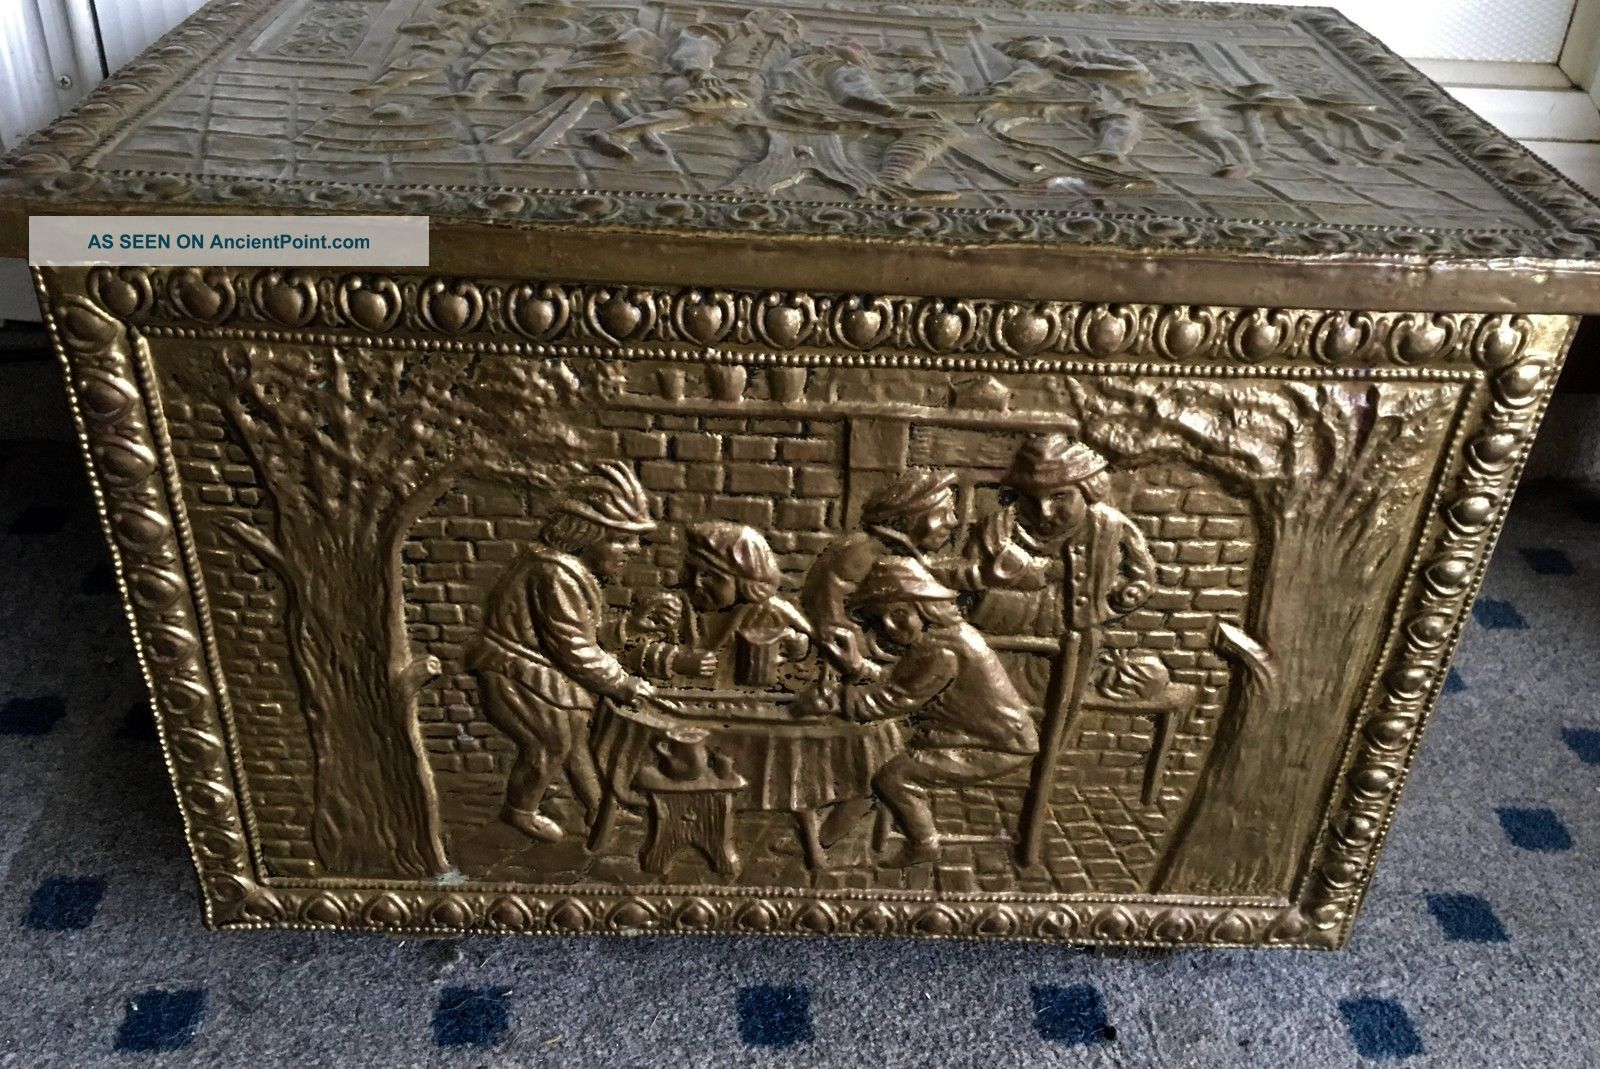 Vintage Fireplace Brass Colonial Trunk Early American Coal Box Wood Kindling Art Hearth Ware photo